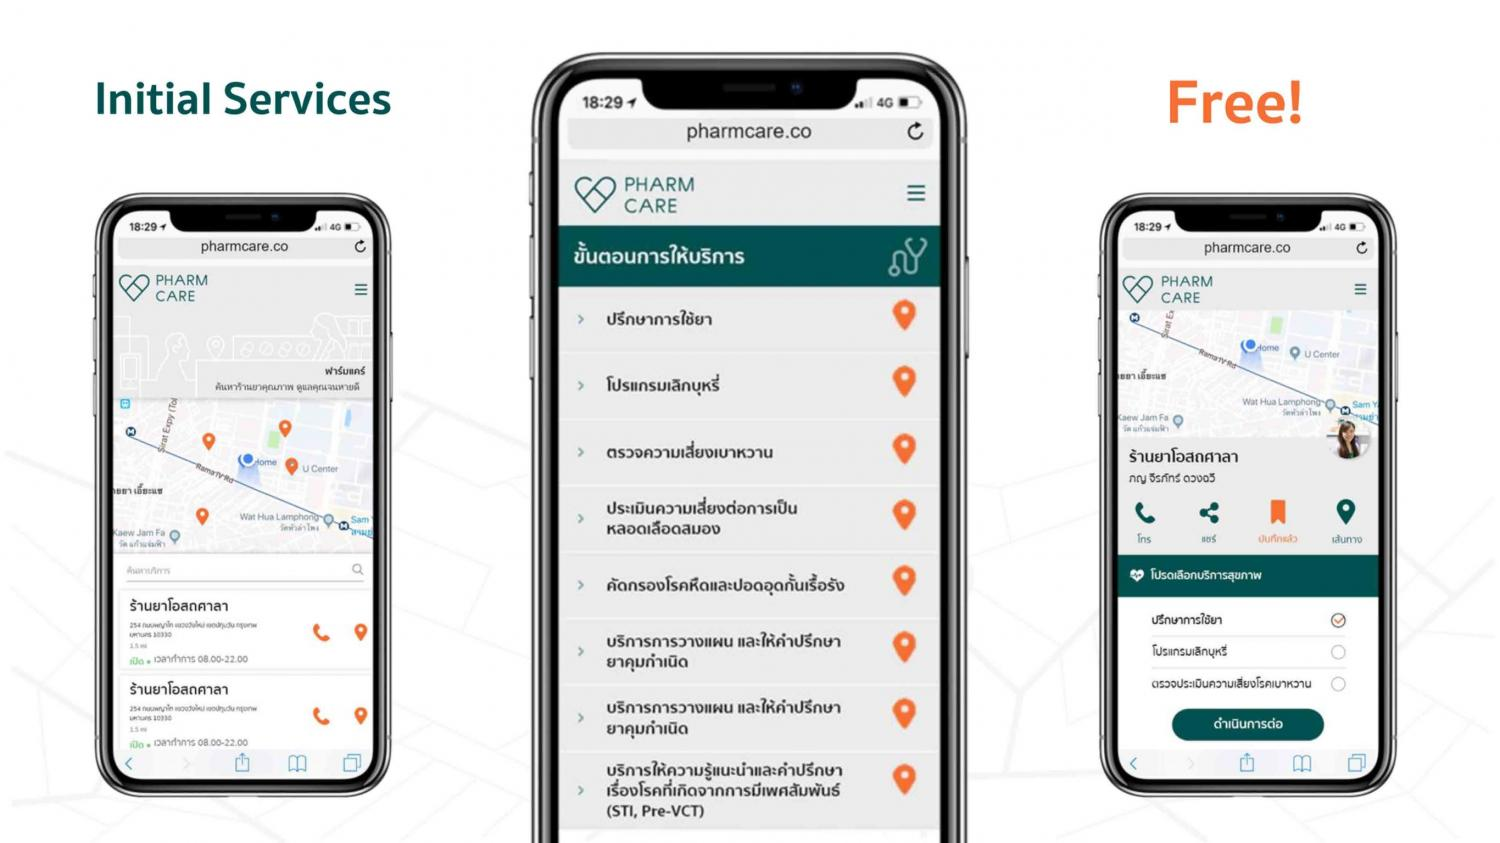 Pharmcare.co lets users locate drugstores with pharmacists who stand ready to dispense healthcare advice.